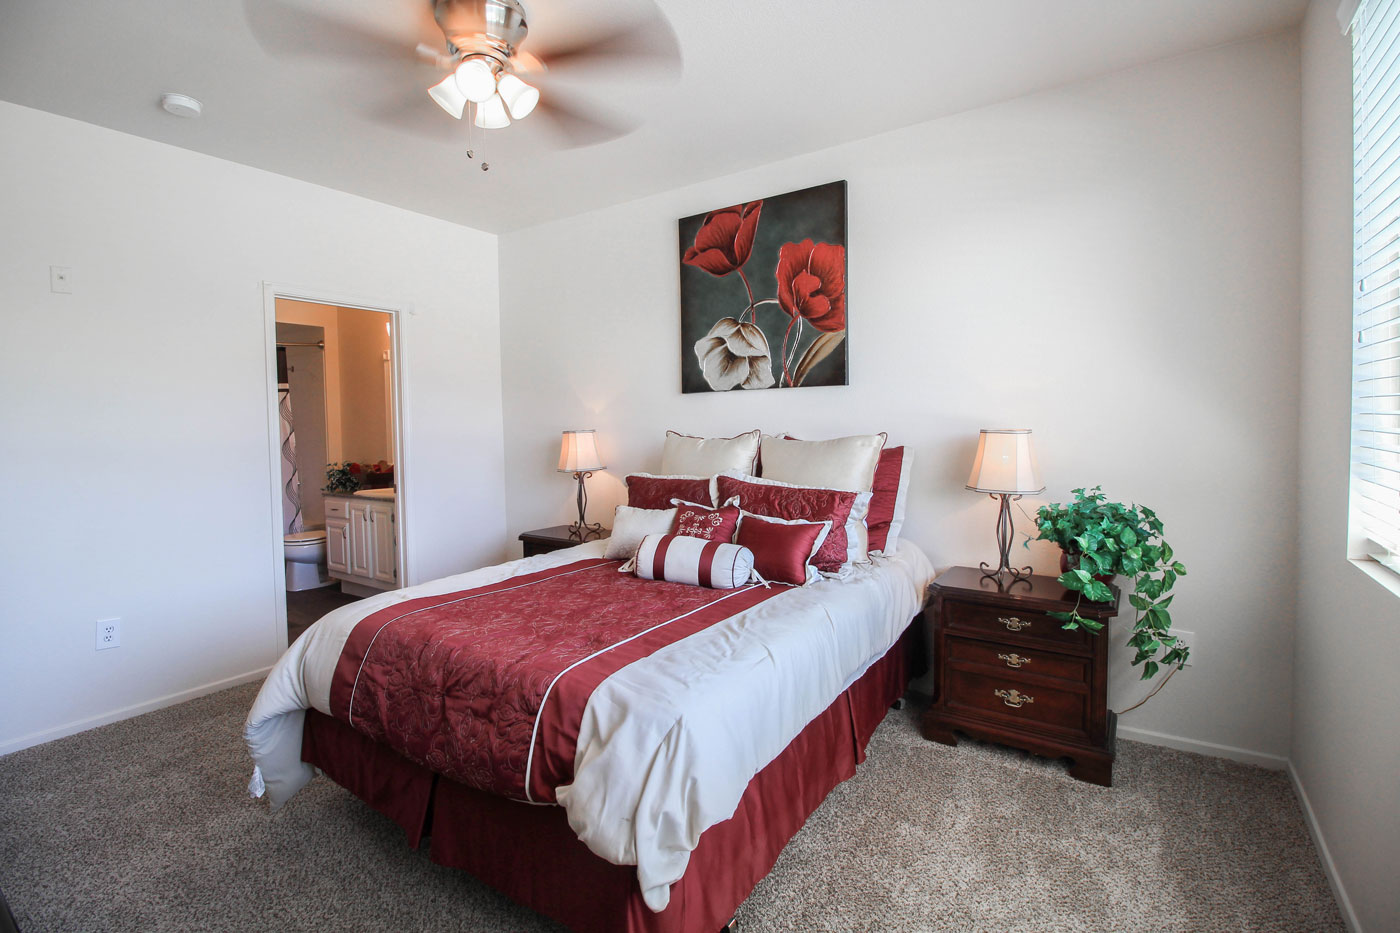 Bedroom with queen bed and red floral decor and side table lamps.